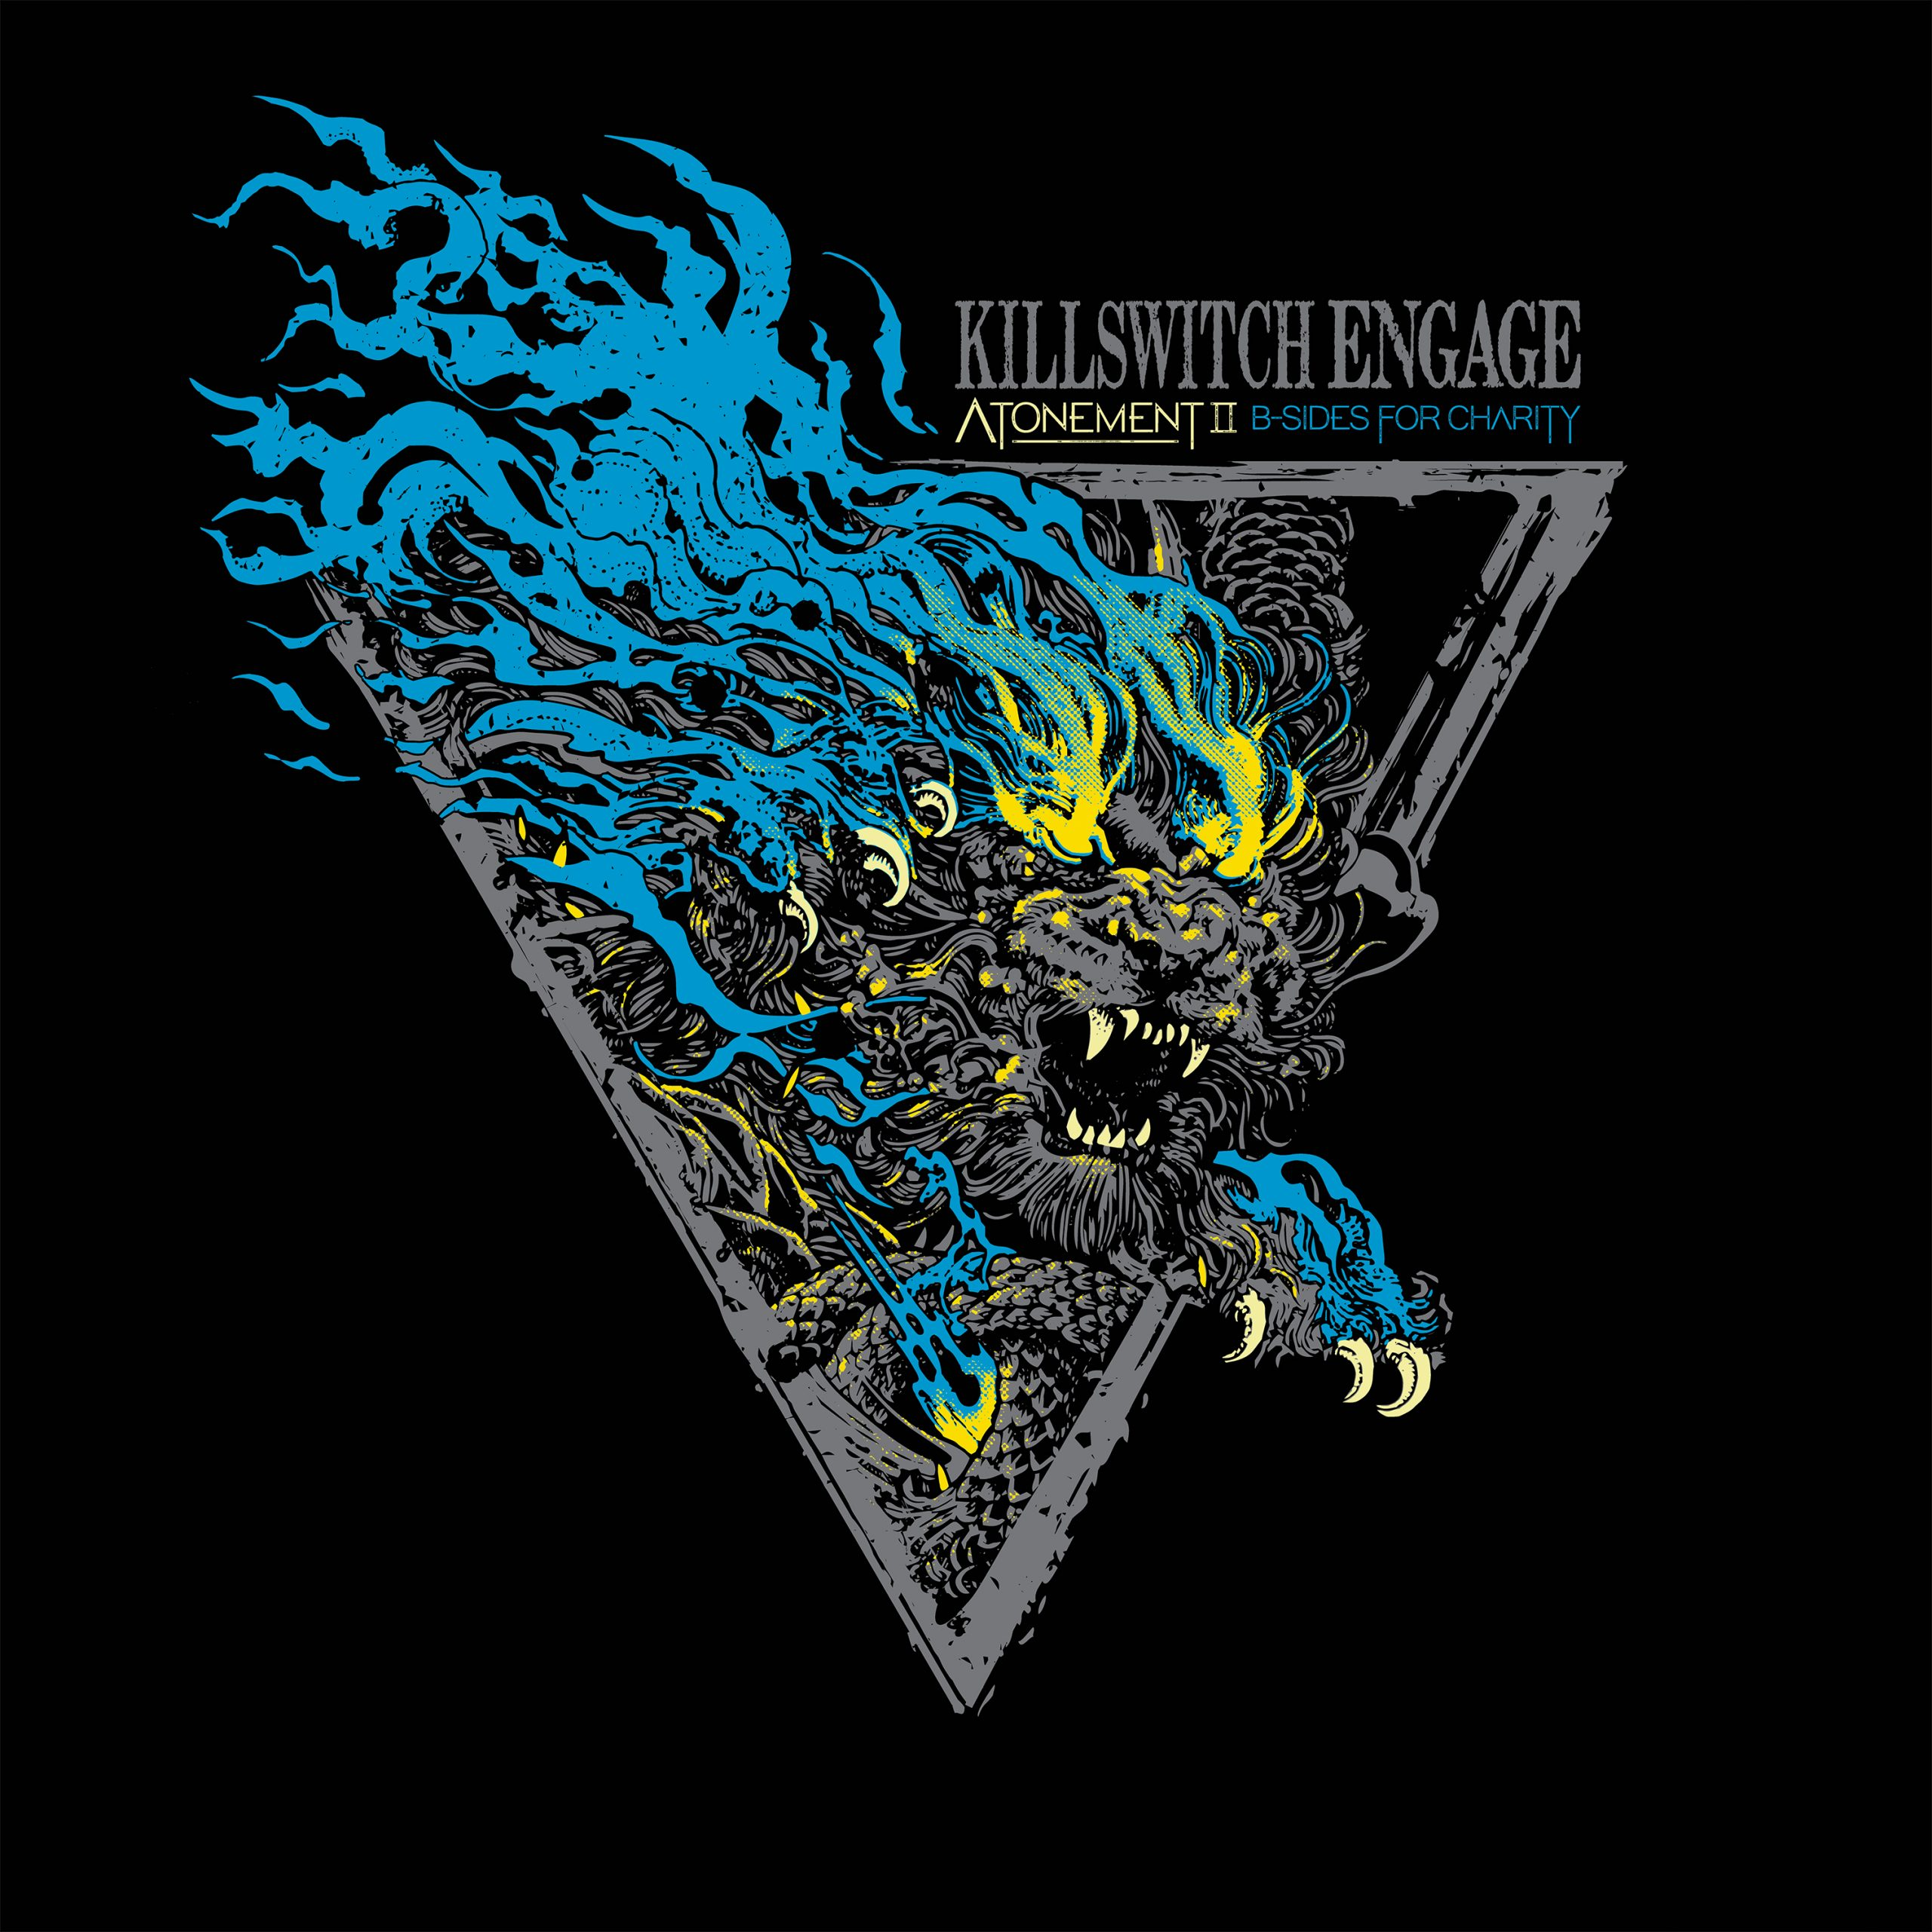 Killswitch Engage - Atonement II B-Sides for Charity EP